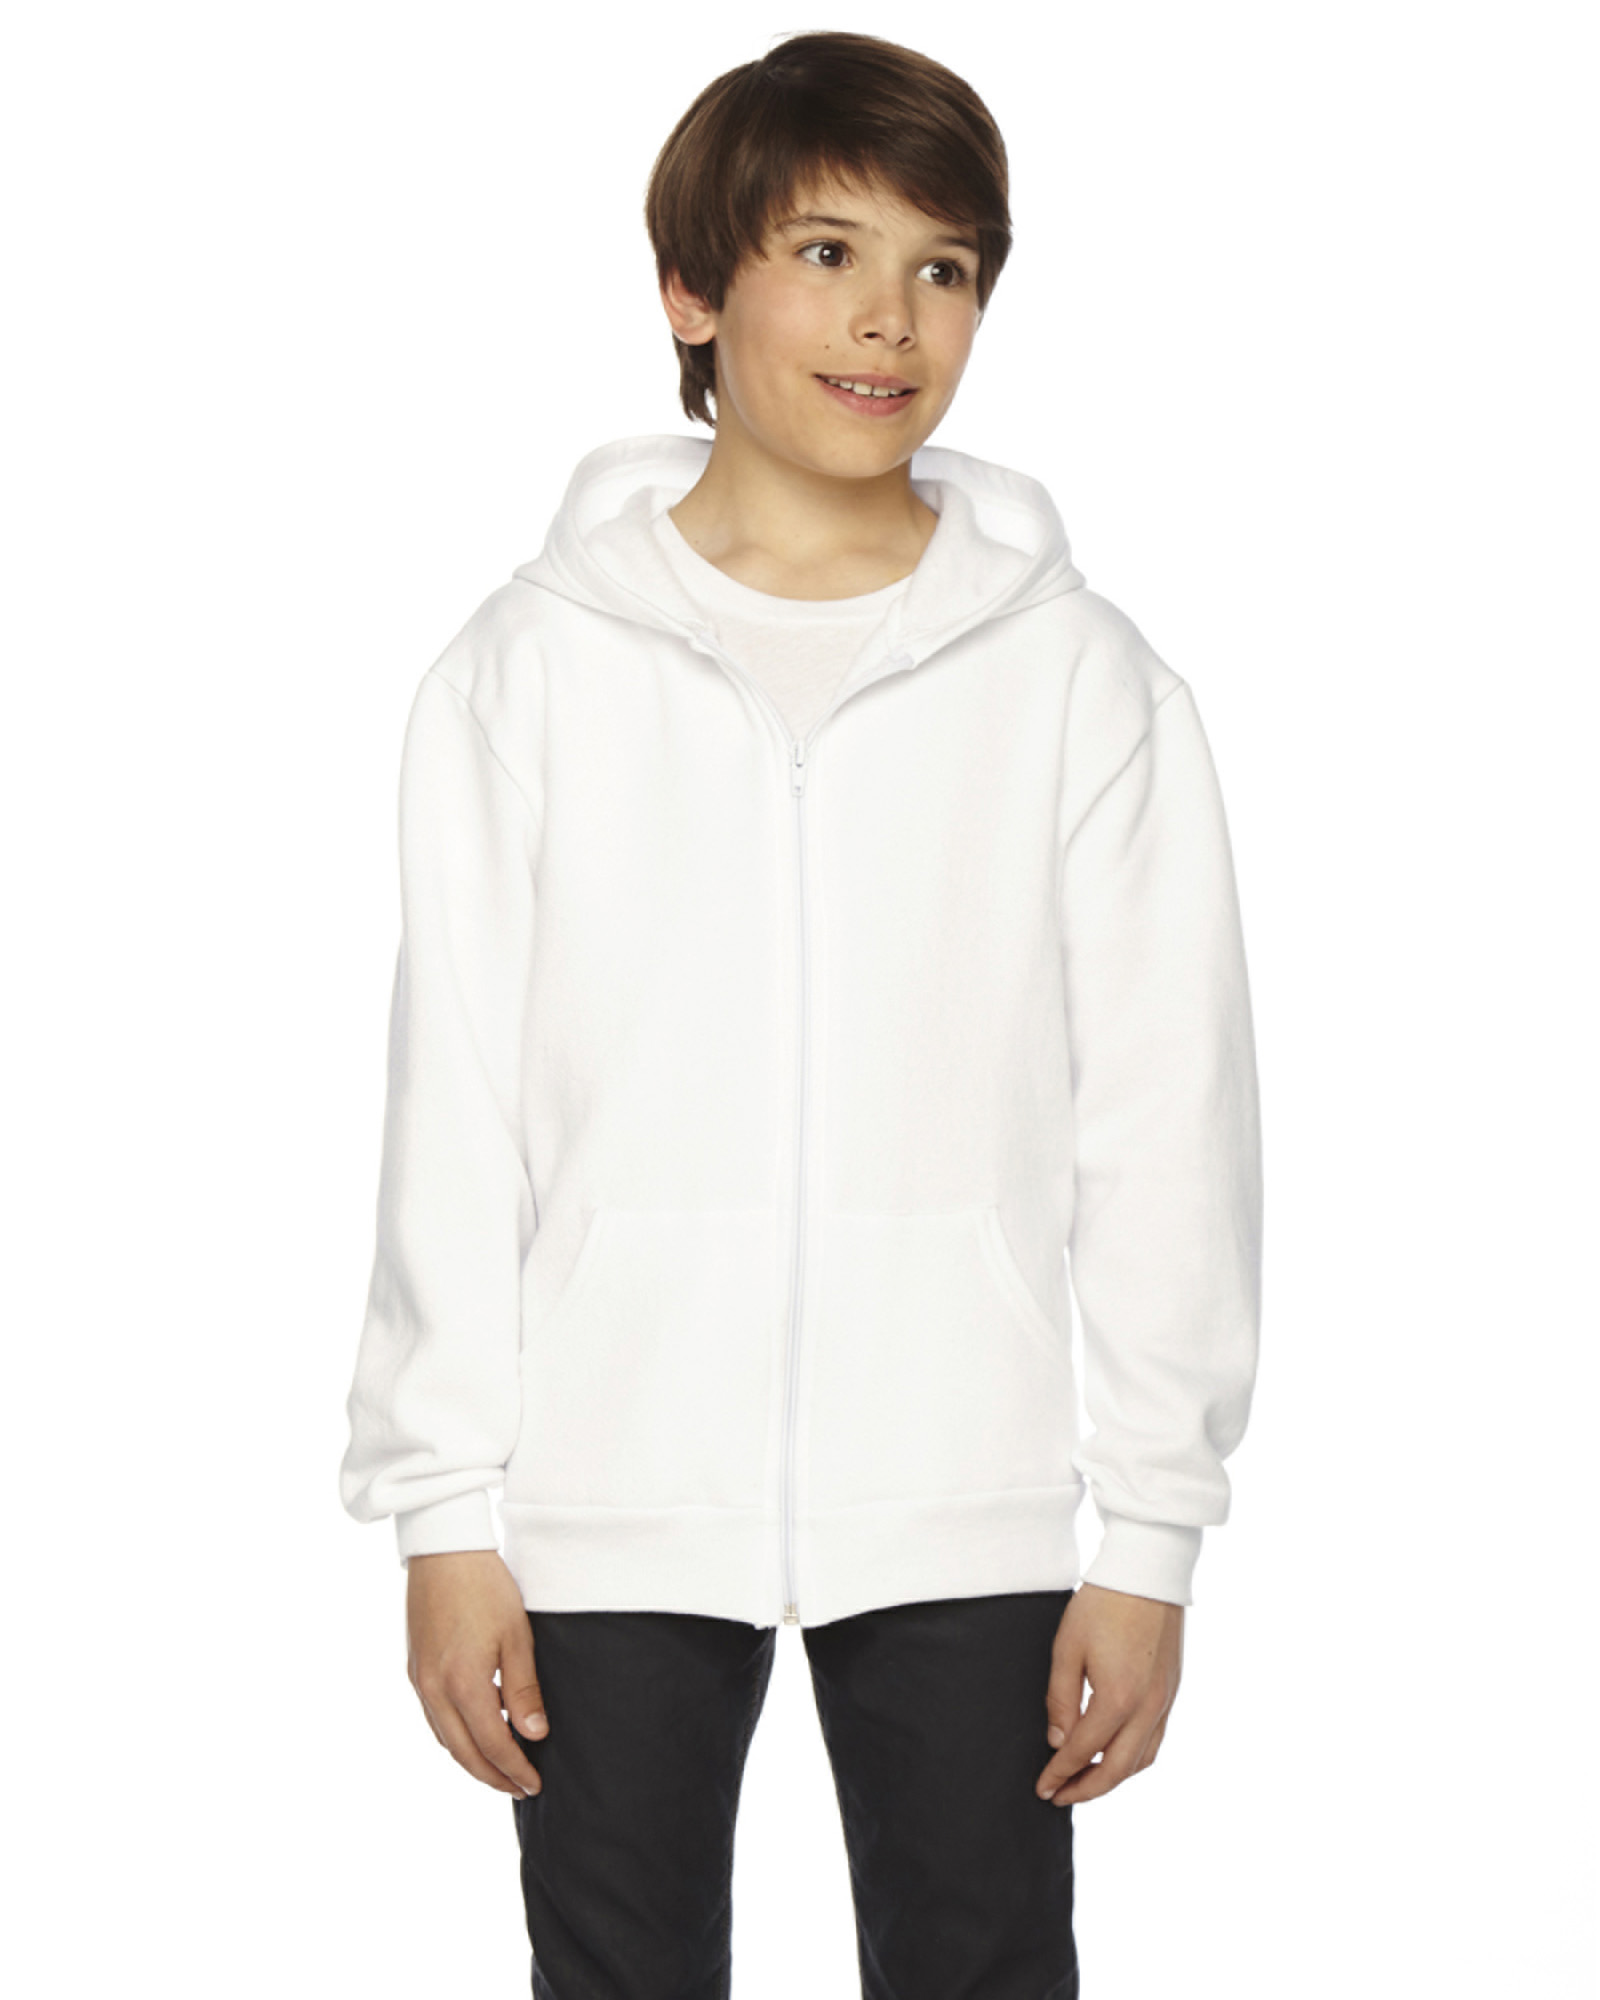 best sneakers 6e577 2d2f2  A picture of a American Apparel Youth Flex Fleece Zip Hoodie, ready to be.